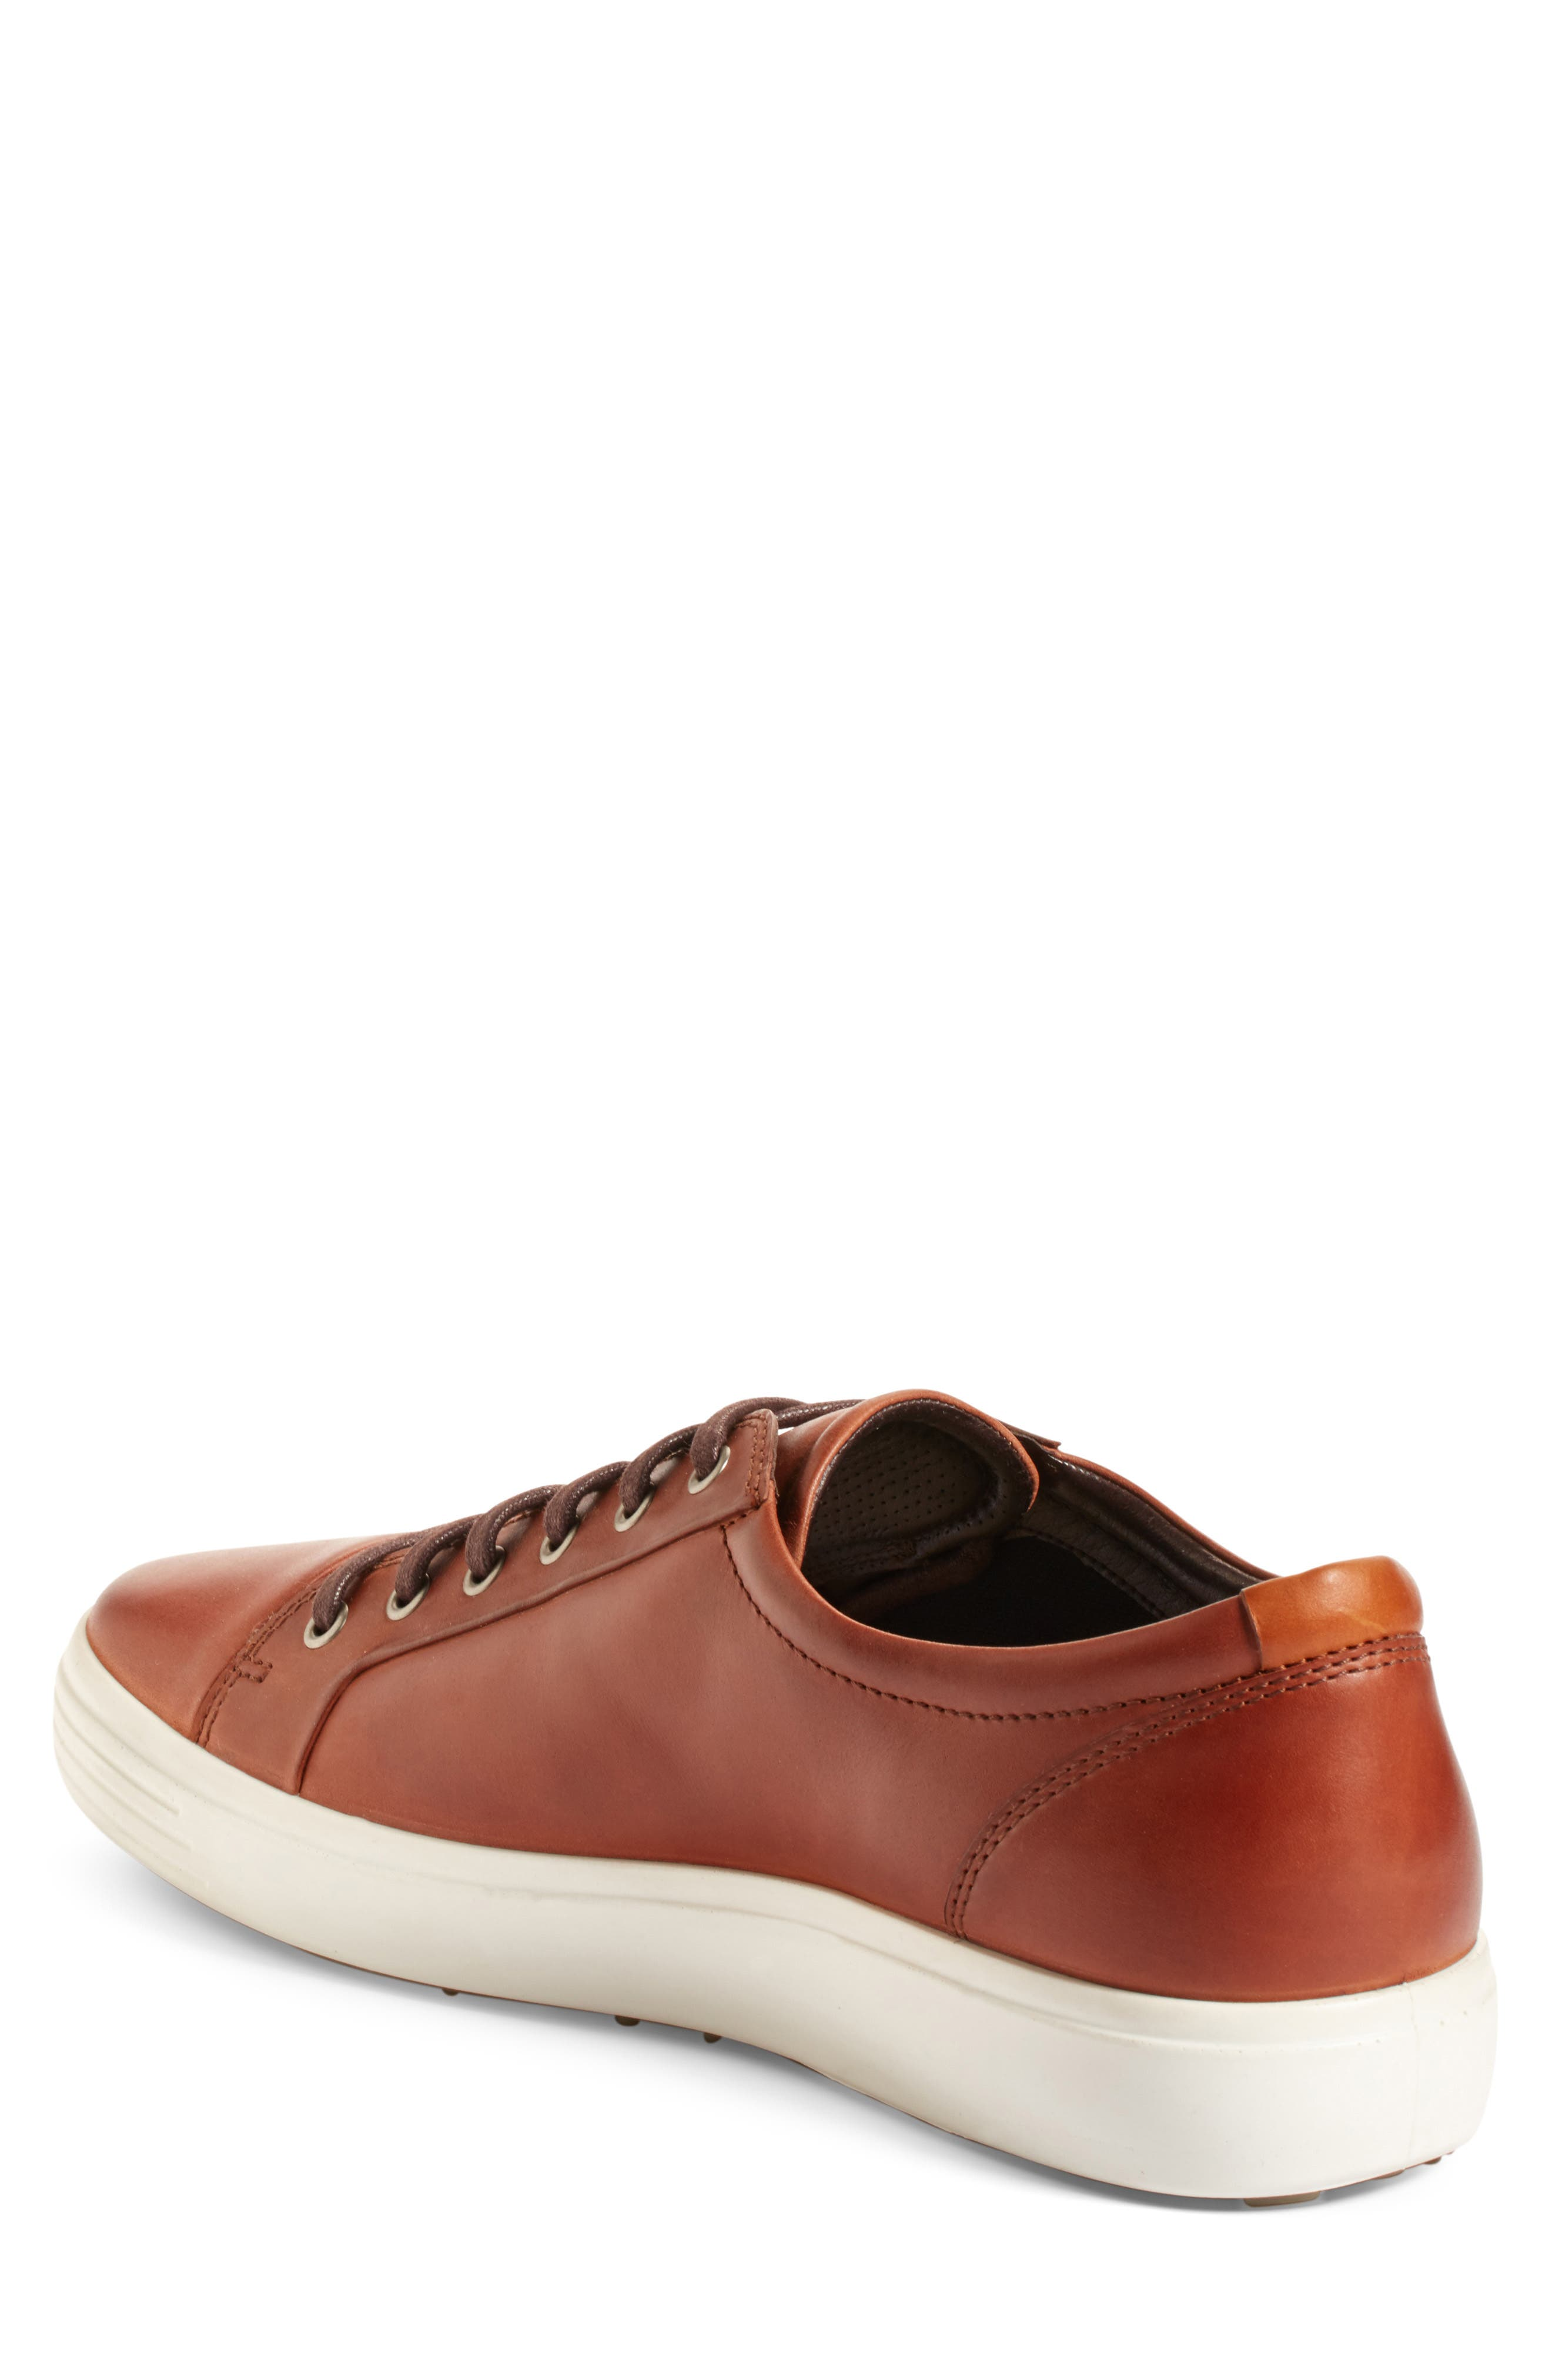 Soft VII Lace-Up Sneaker,                             Alternate thumbnail 35, color,